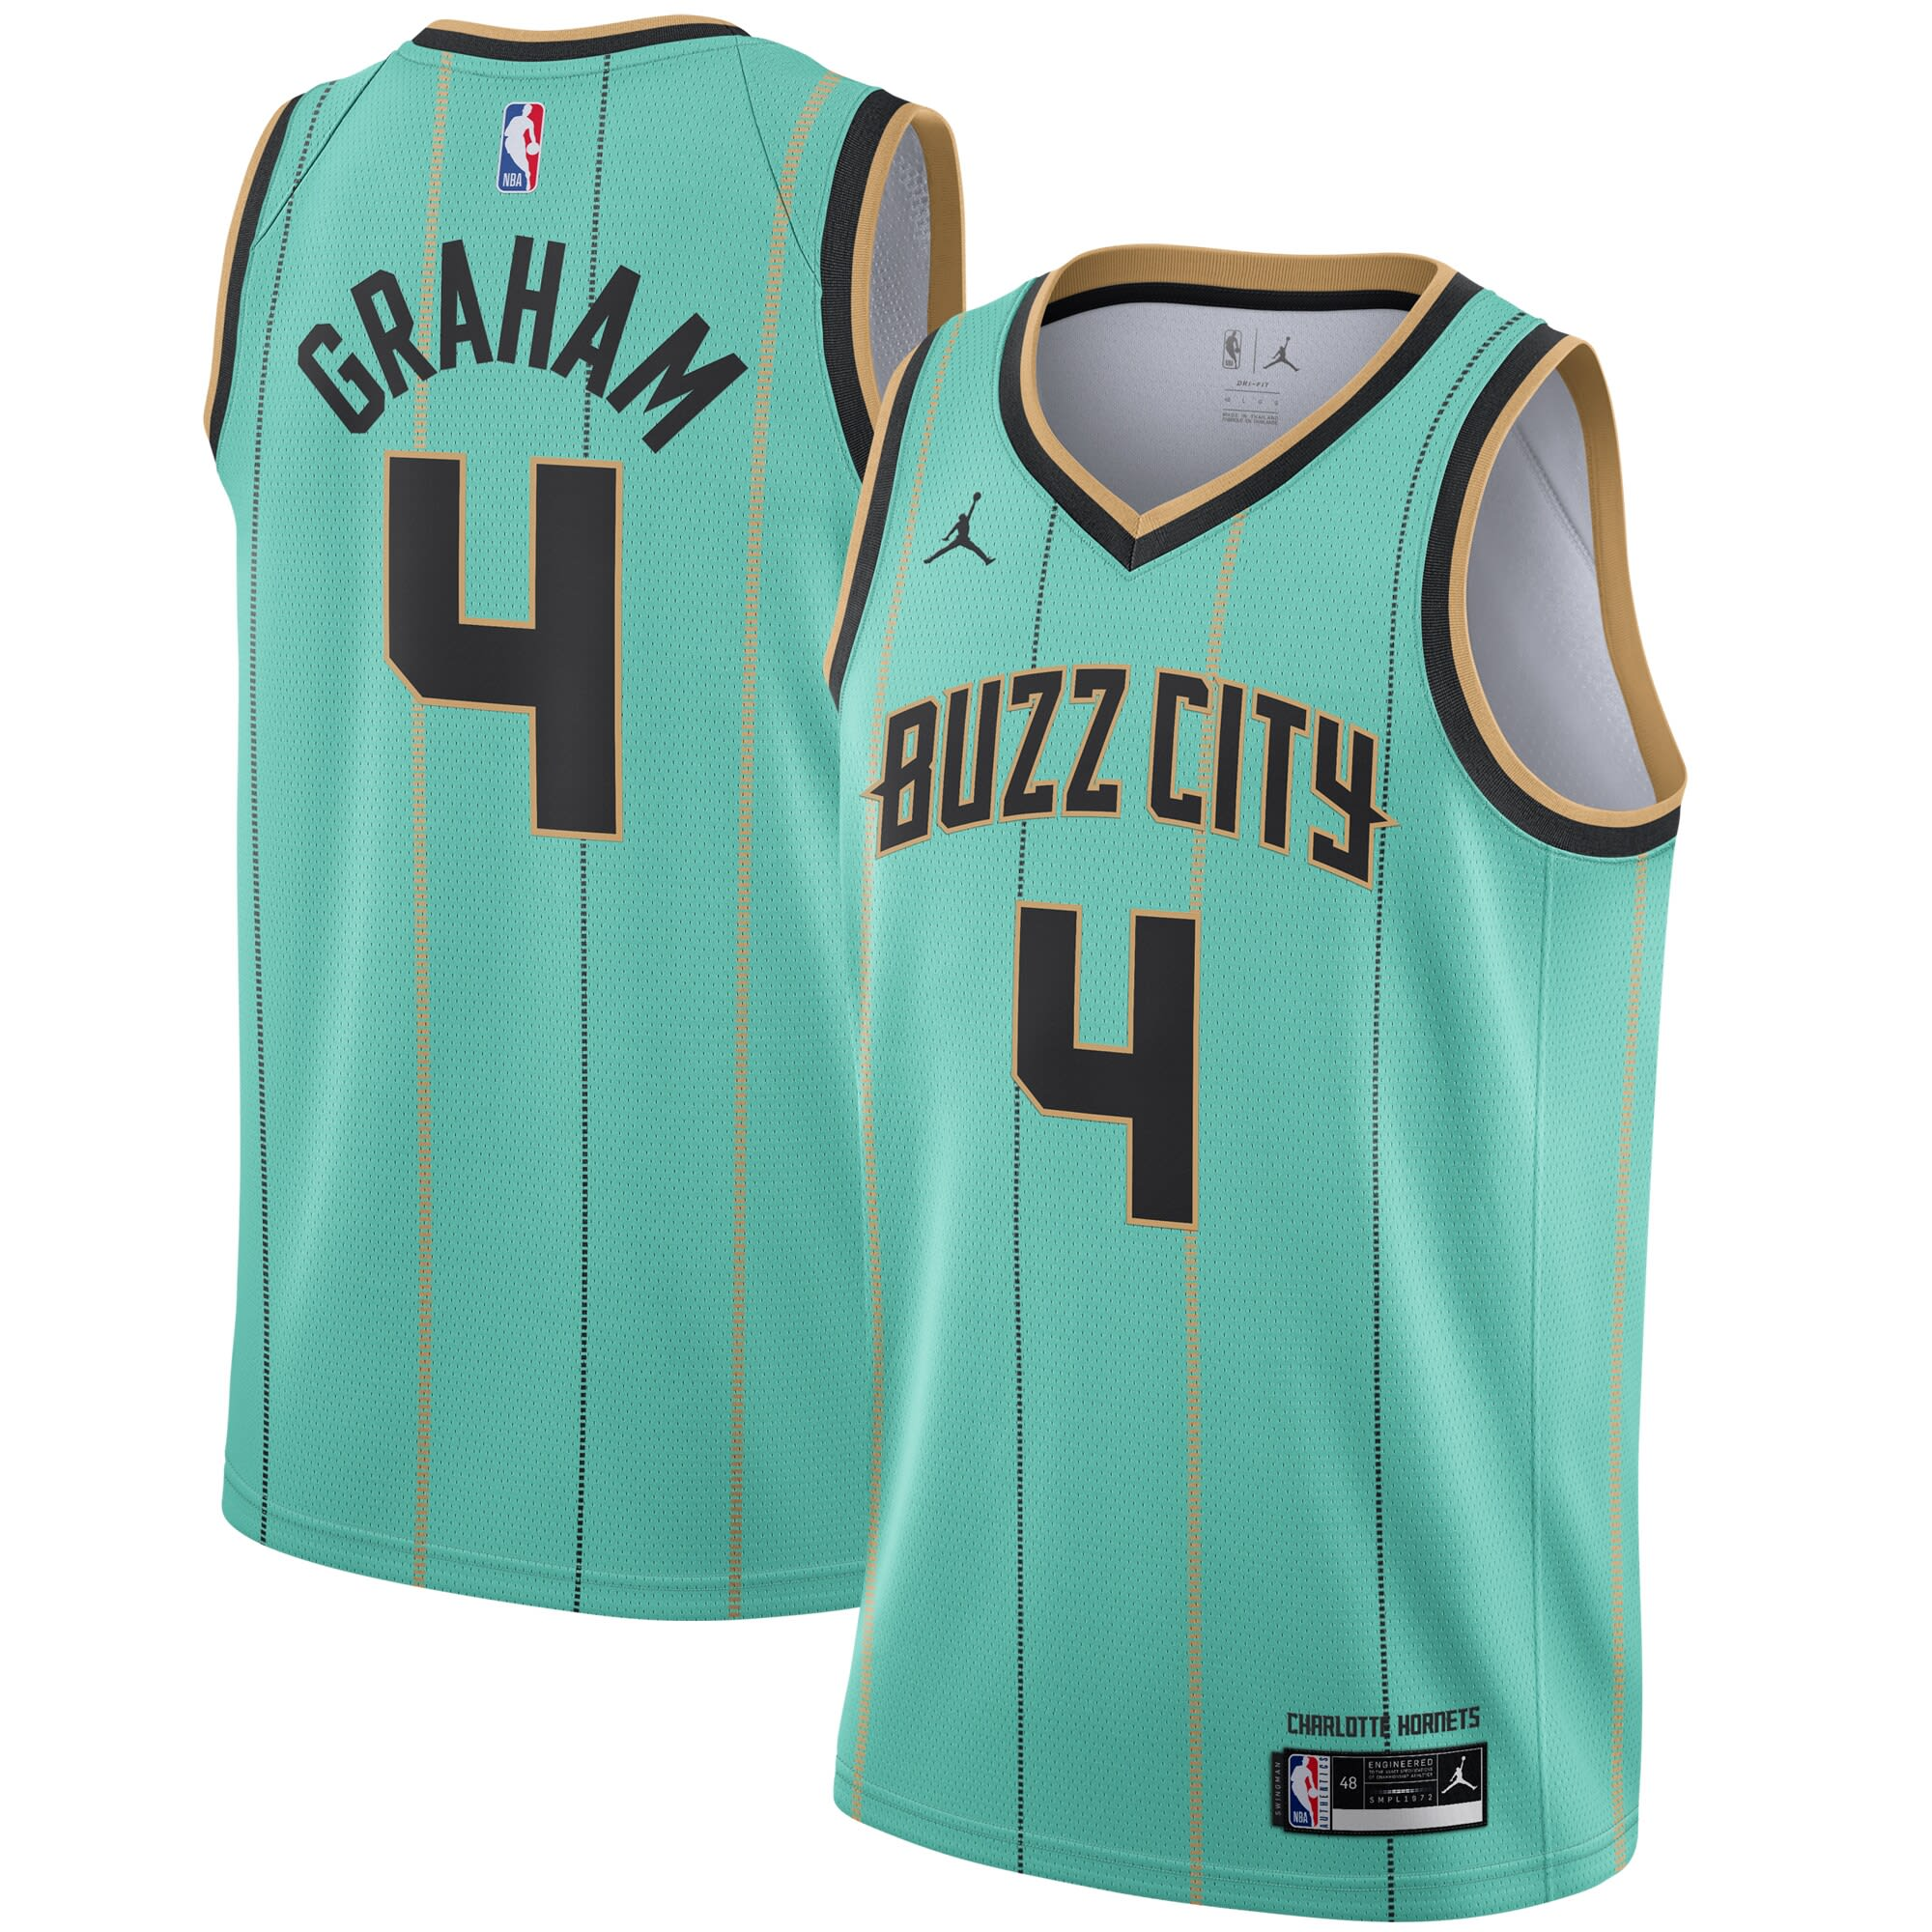 Order Your Charlotte Hornets Nike City Edition Gear Today